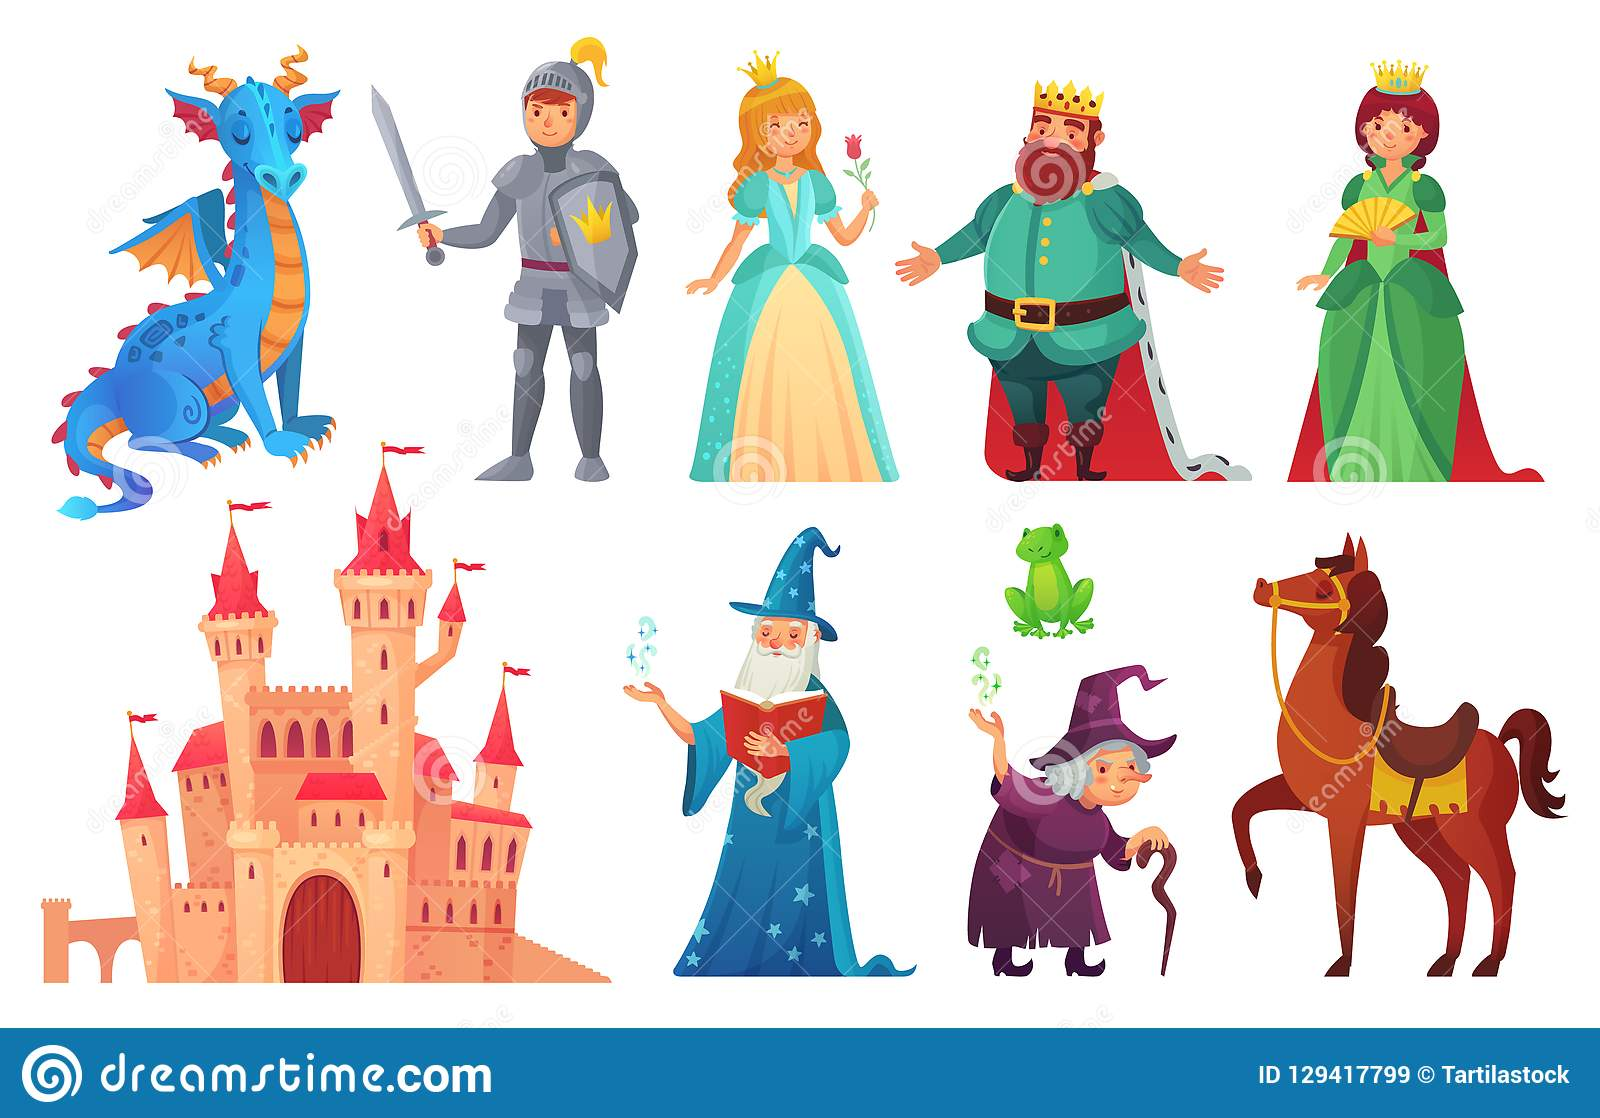 Fairy tales characters. Fantasy knight and dragon, prince and princess, magic world queen and king isolated cartoon